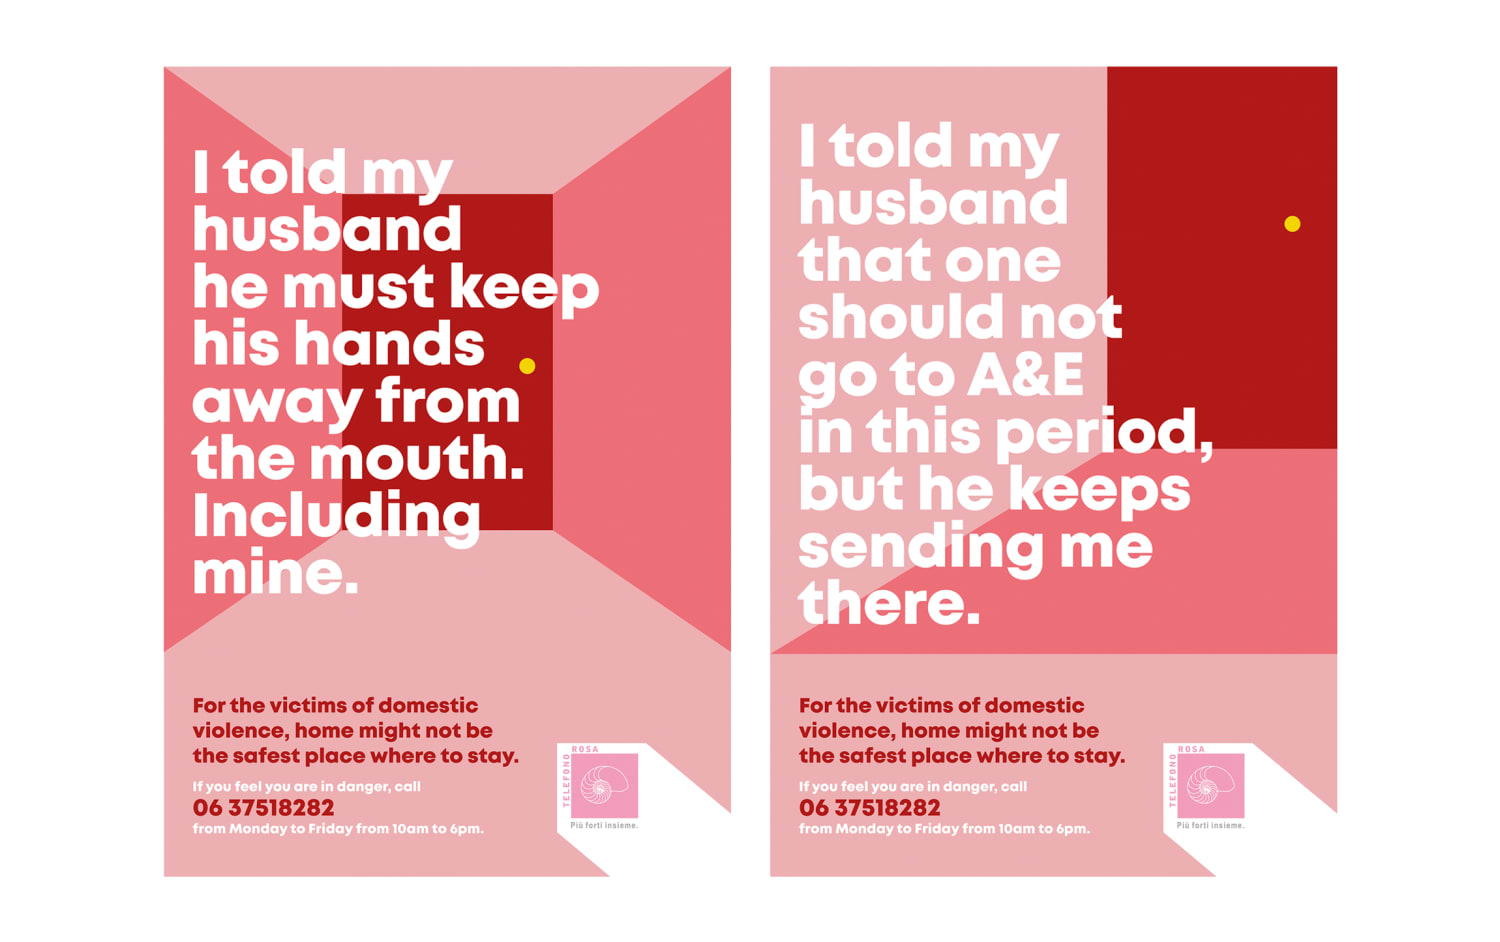 I told my husband ... phrases on red and rose background for Telefono Rosa campaign